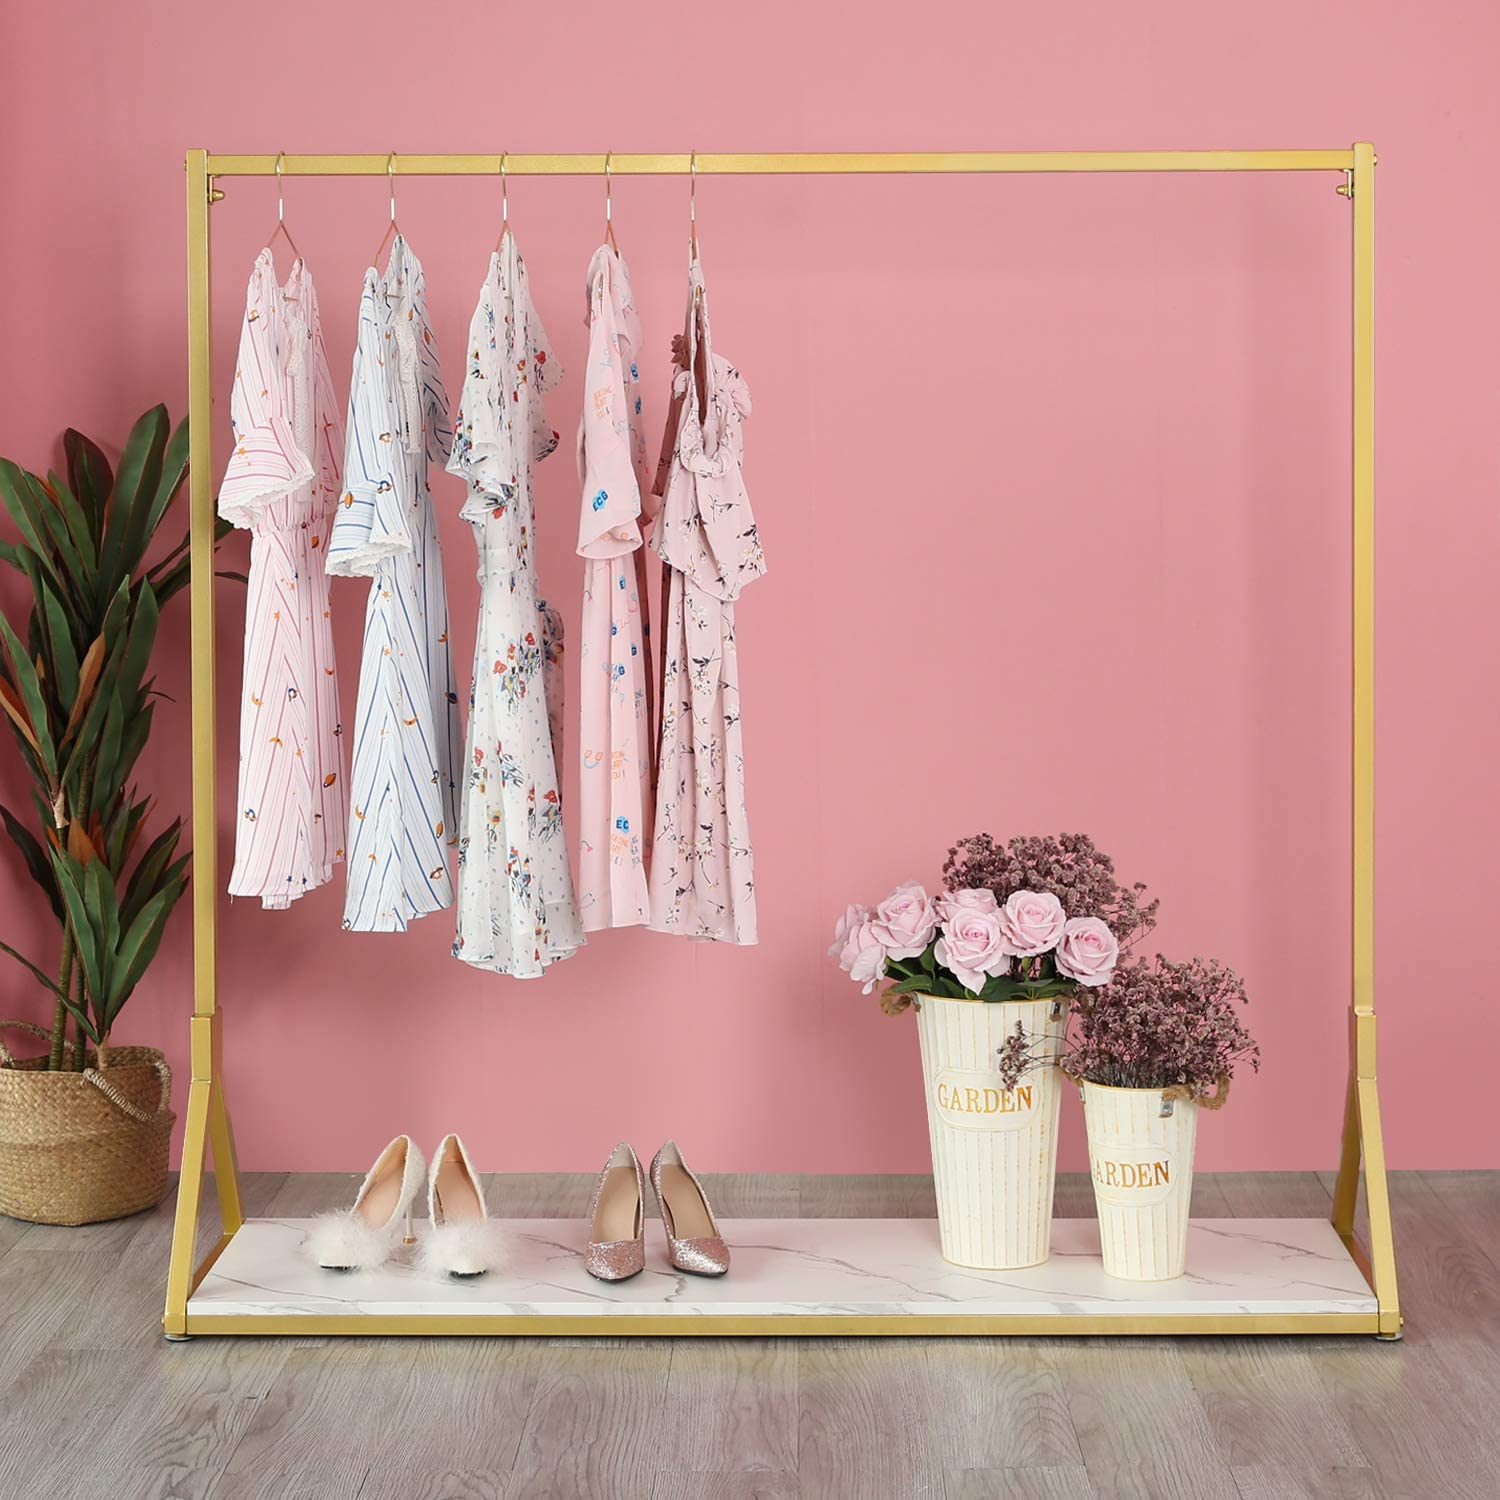 HOMEKAYT Gold Clothing Rack Free Shipping New Modern Metal excellence Woode with Garment